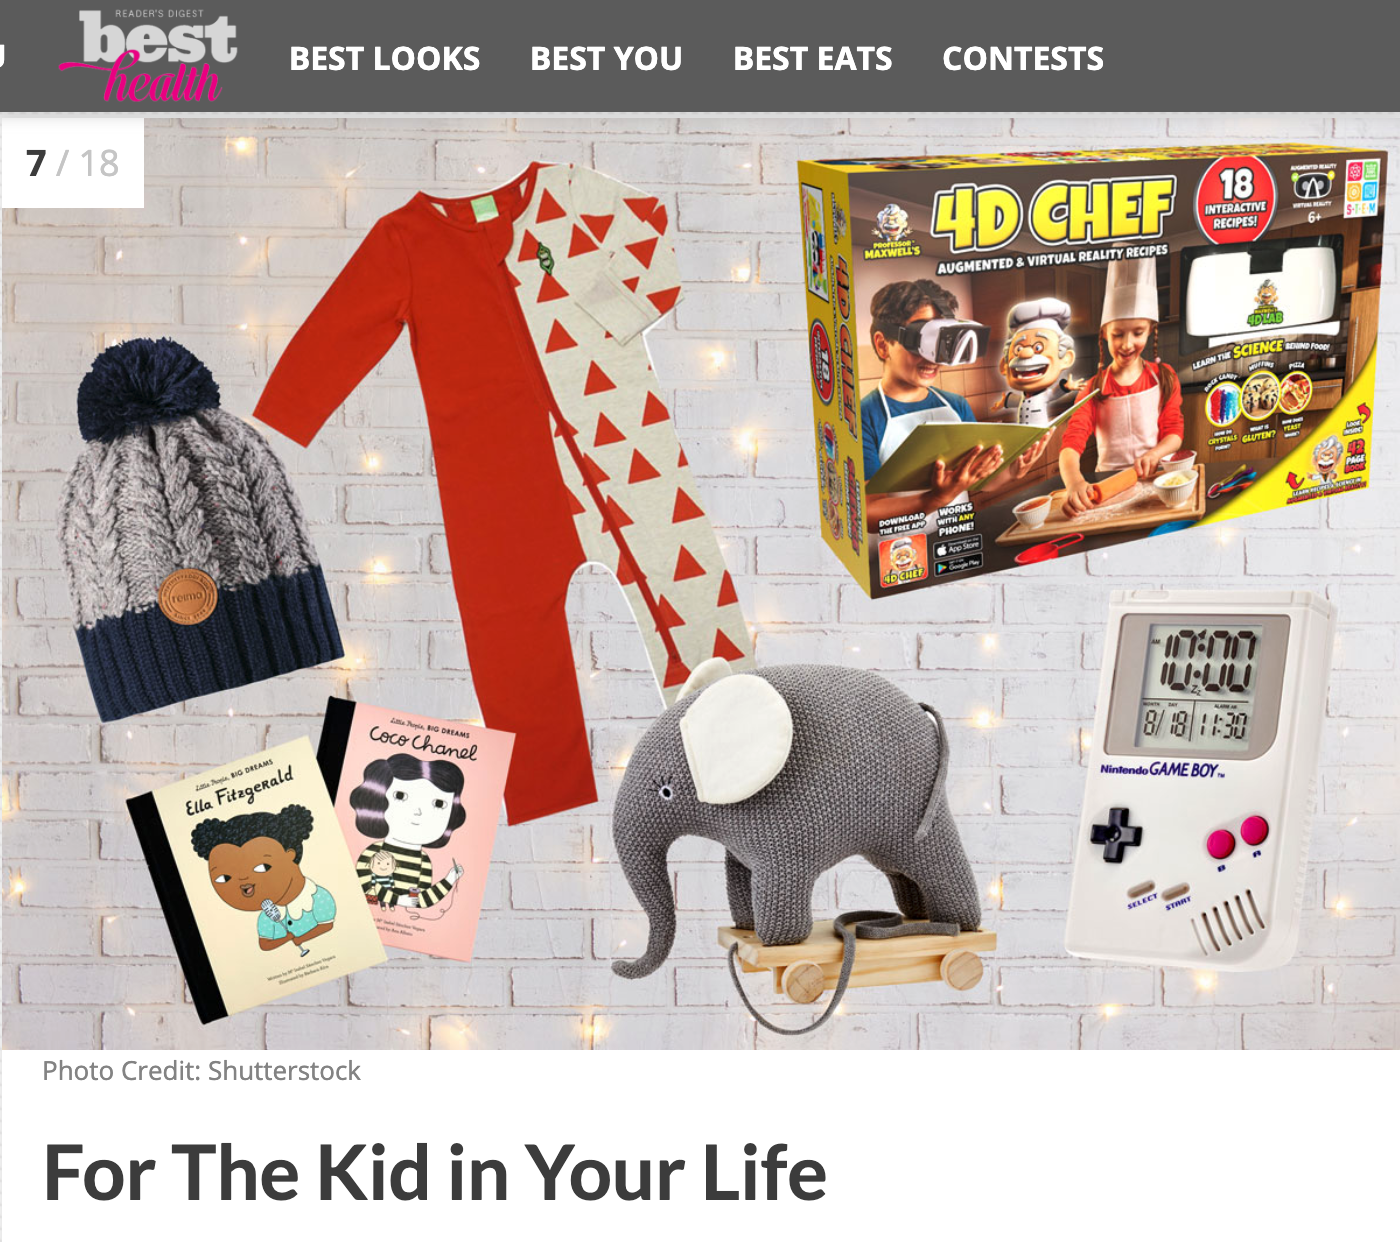 Best Health Magazine - 100+ Under $100: Gifts For Absolutely Everyone on Your List: For the Kids in Your Life.